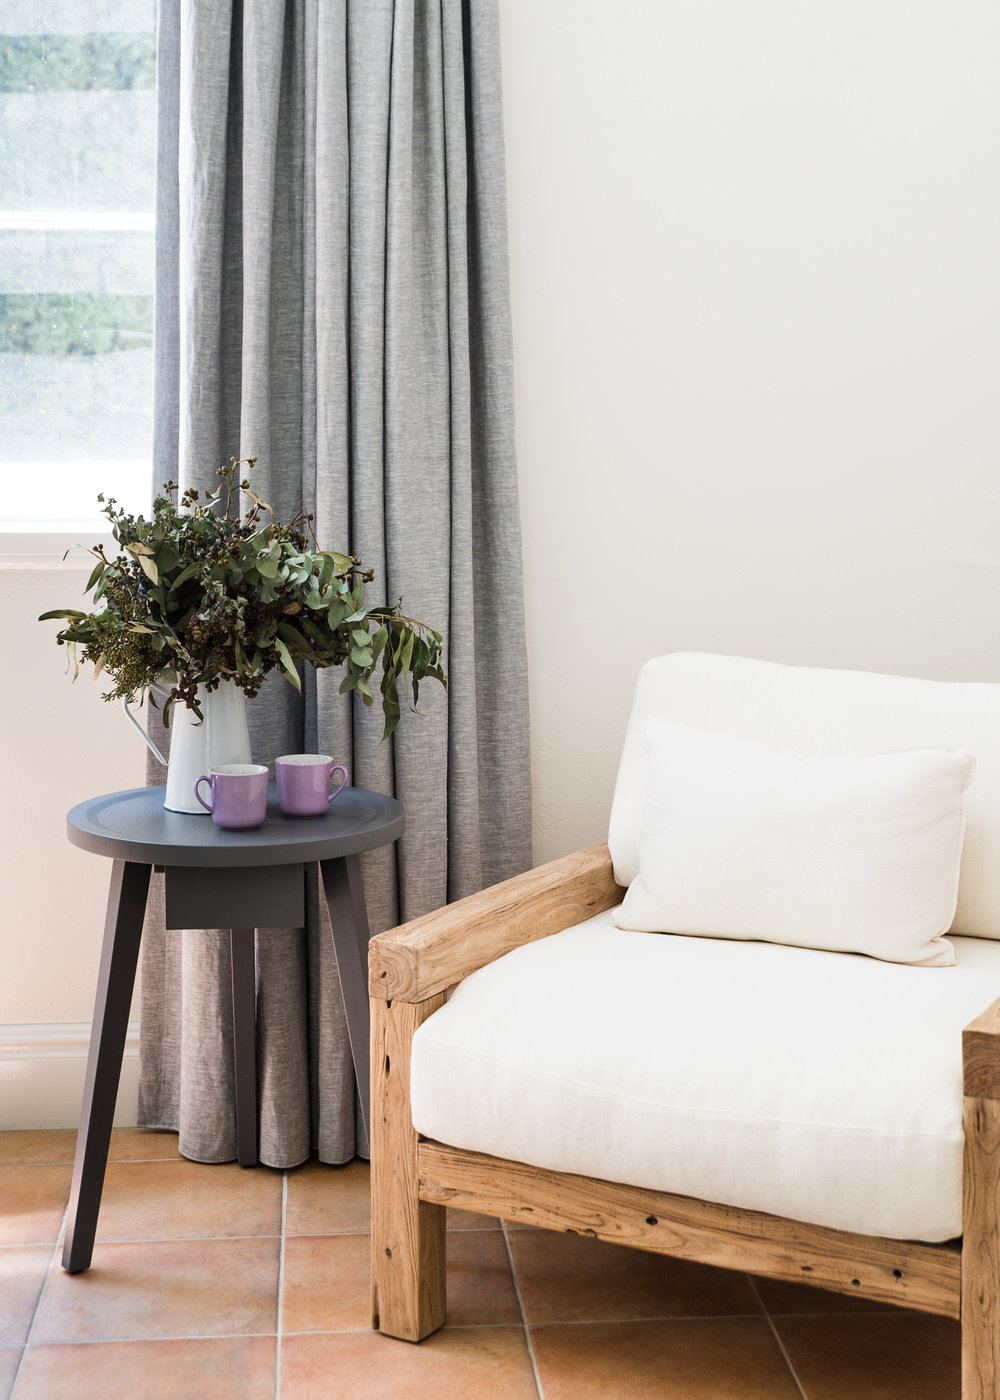 Designer furniture and interiors from Curious Grace at Mona Farm, Braidwood